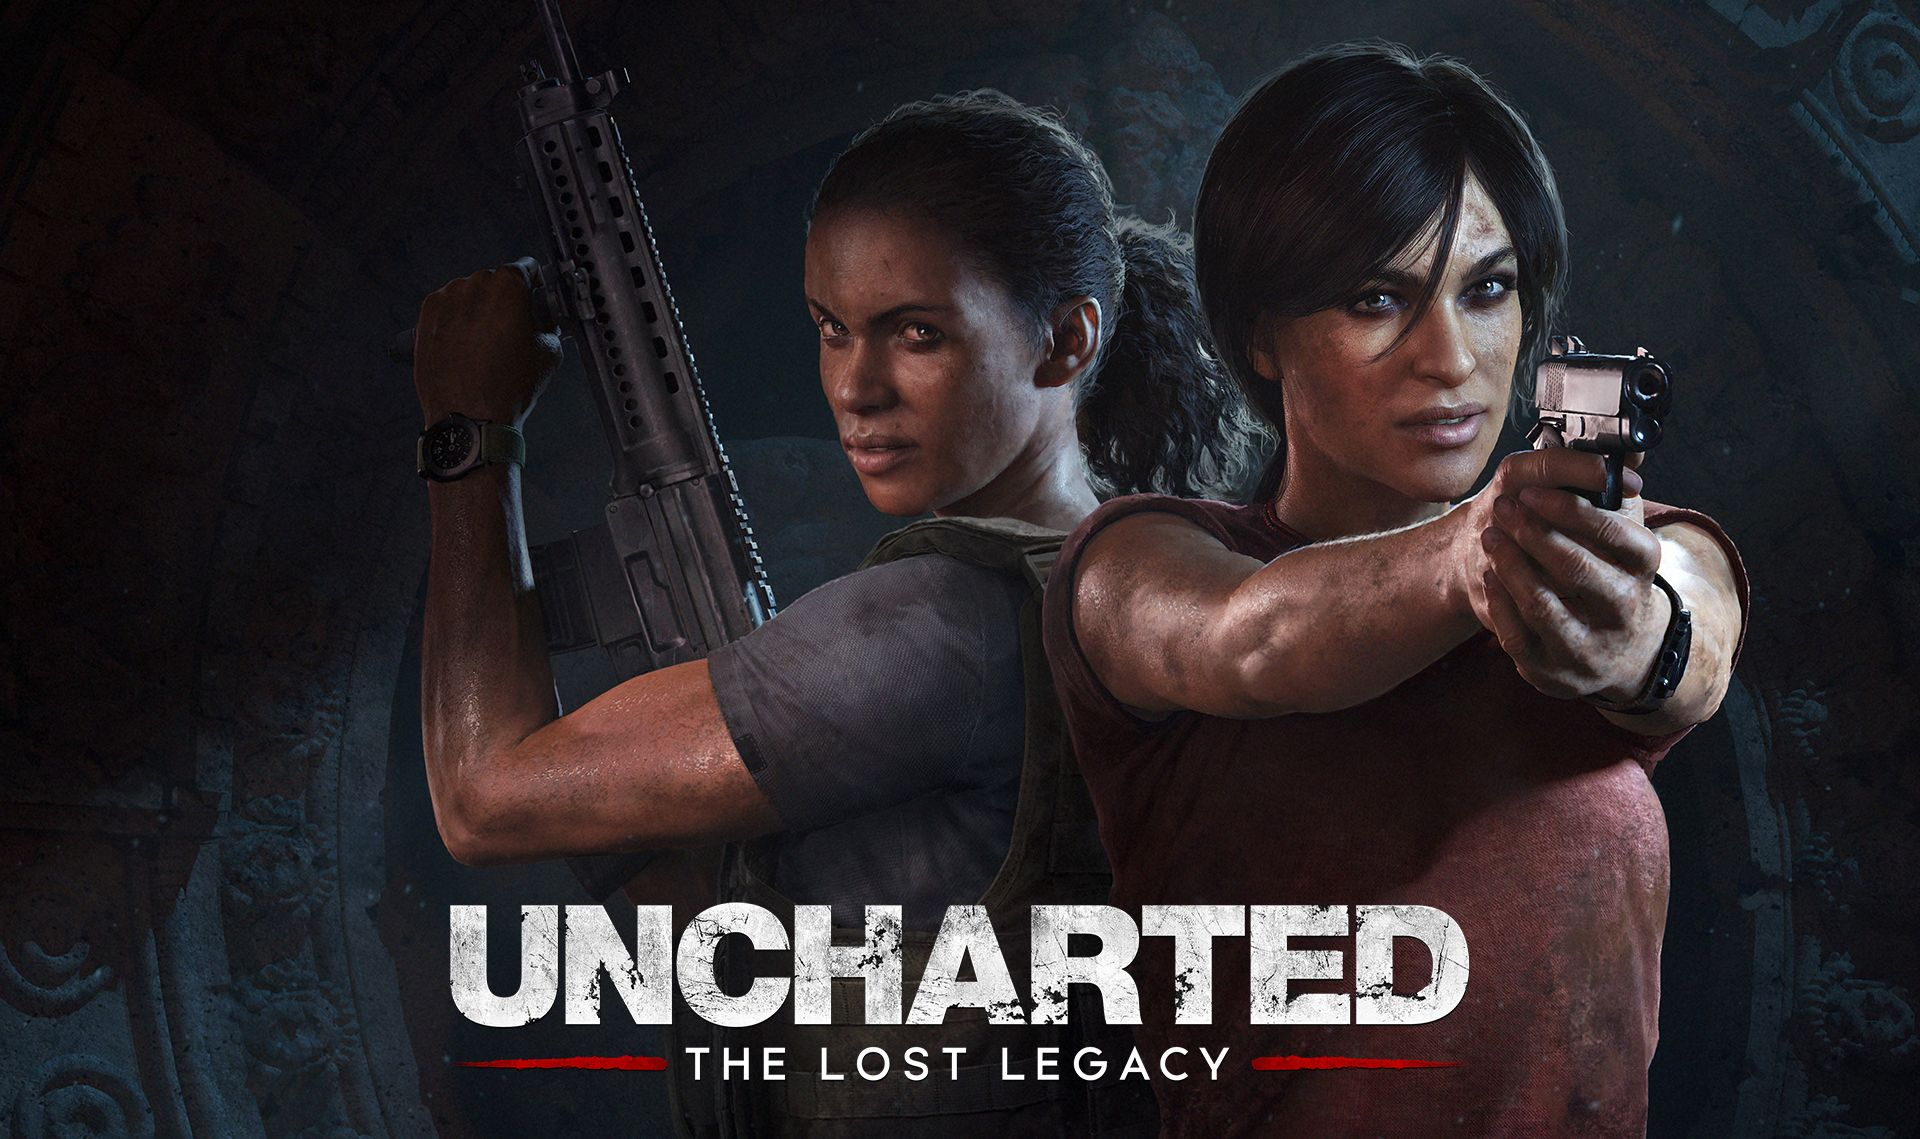 Game review of Uncharted: The Lost Legacy